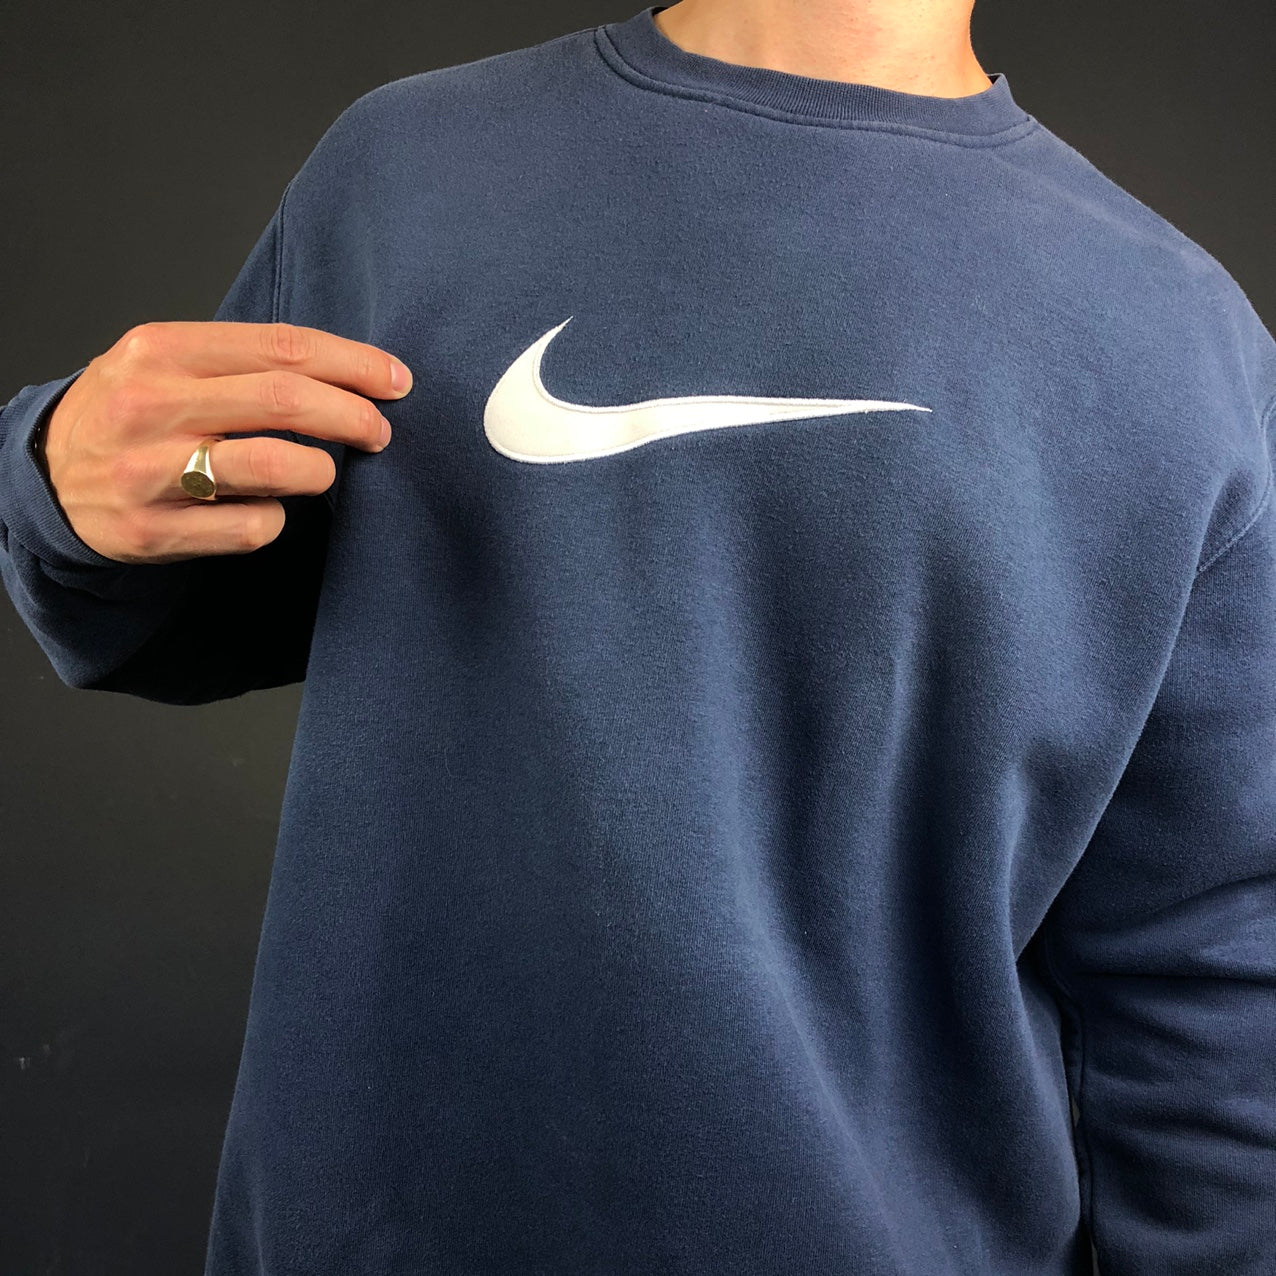 Vintage Nike Sweatshirt with Embroidered Swoosh - XL